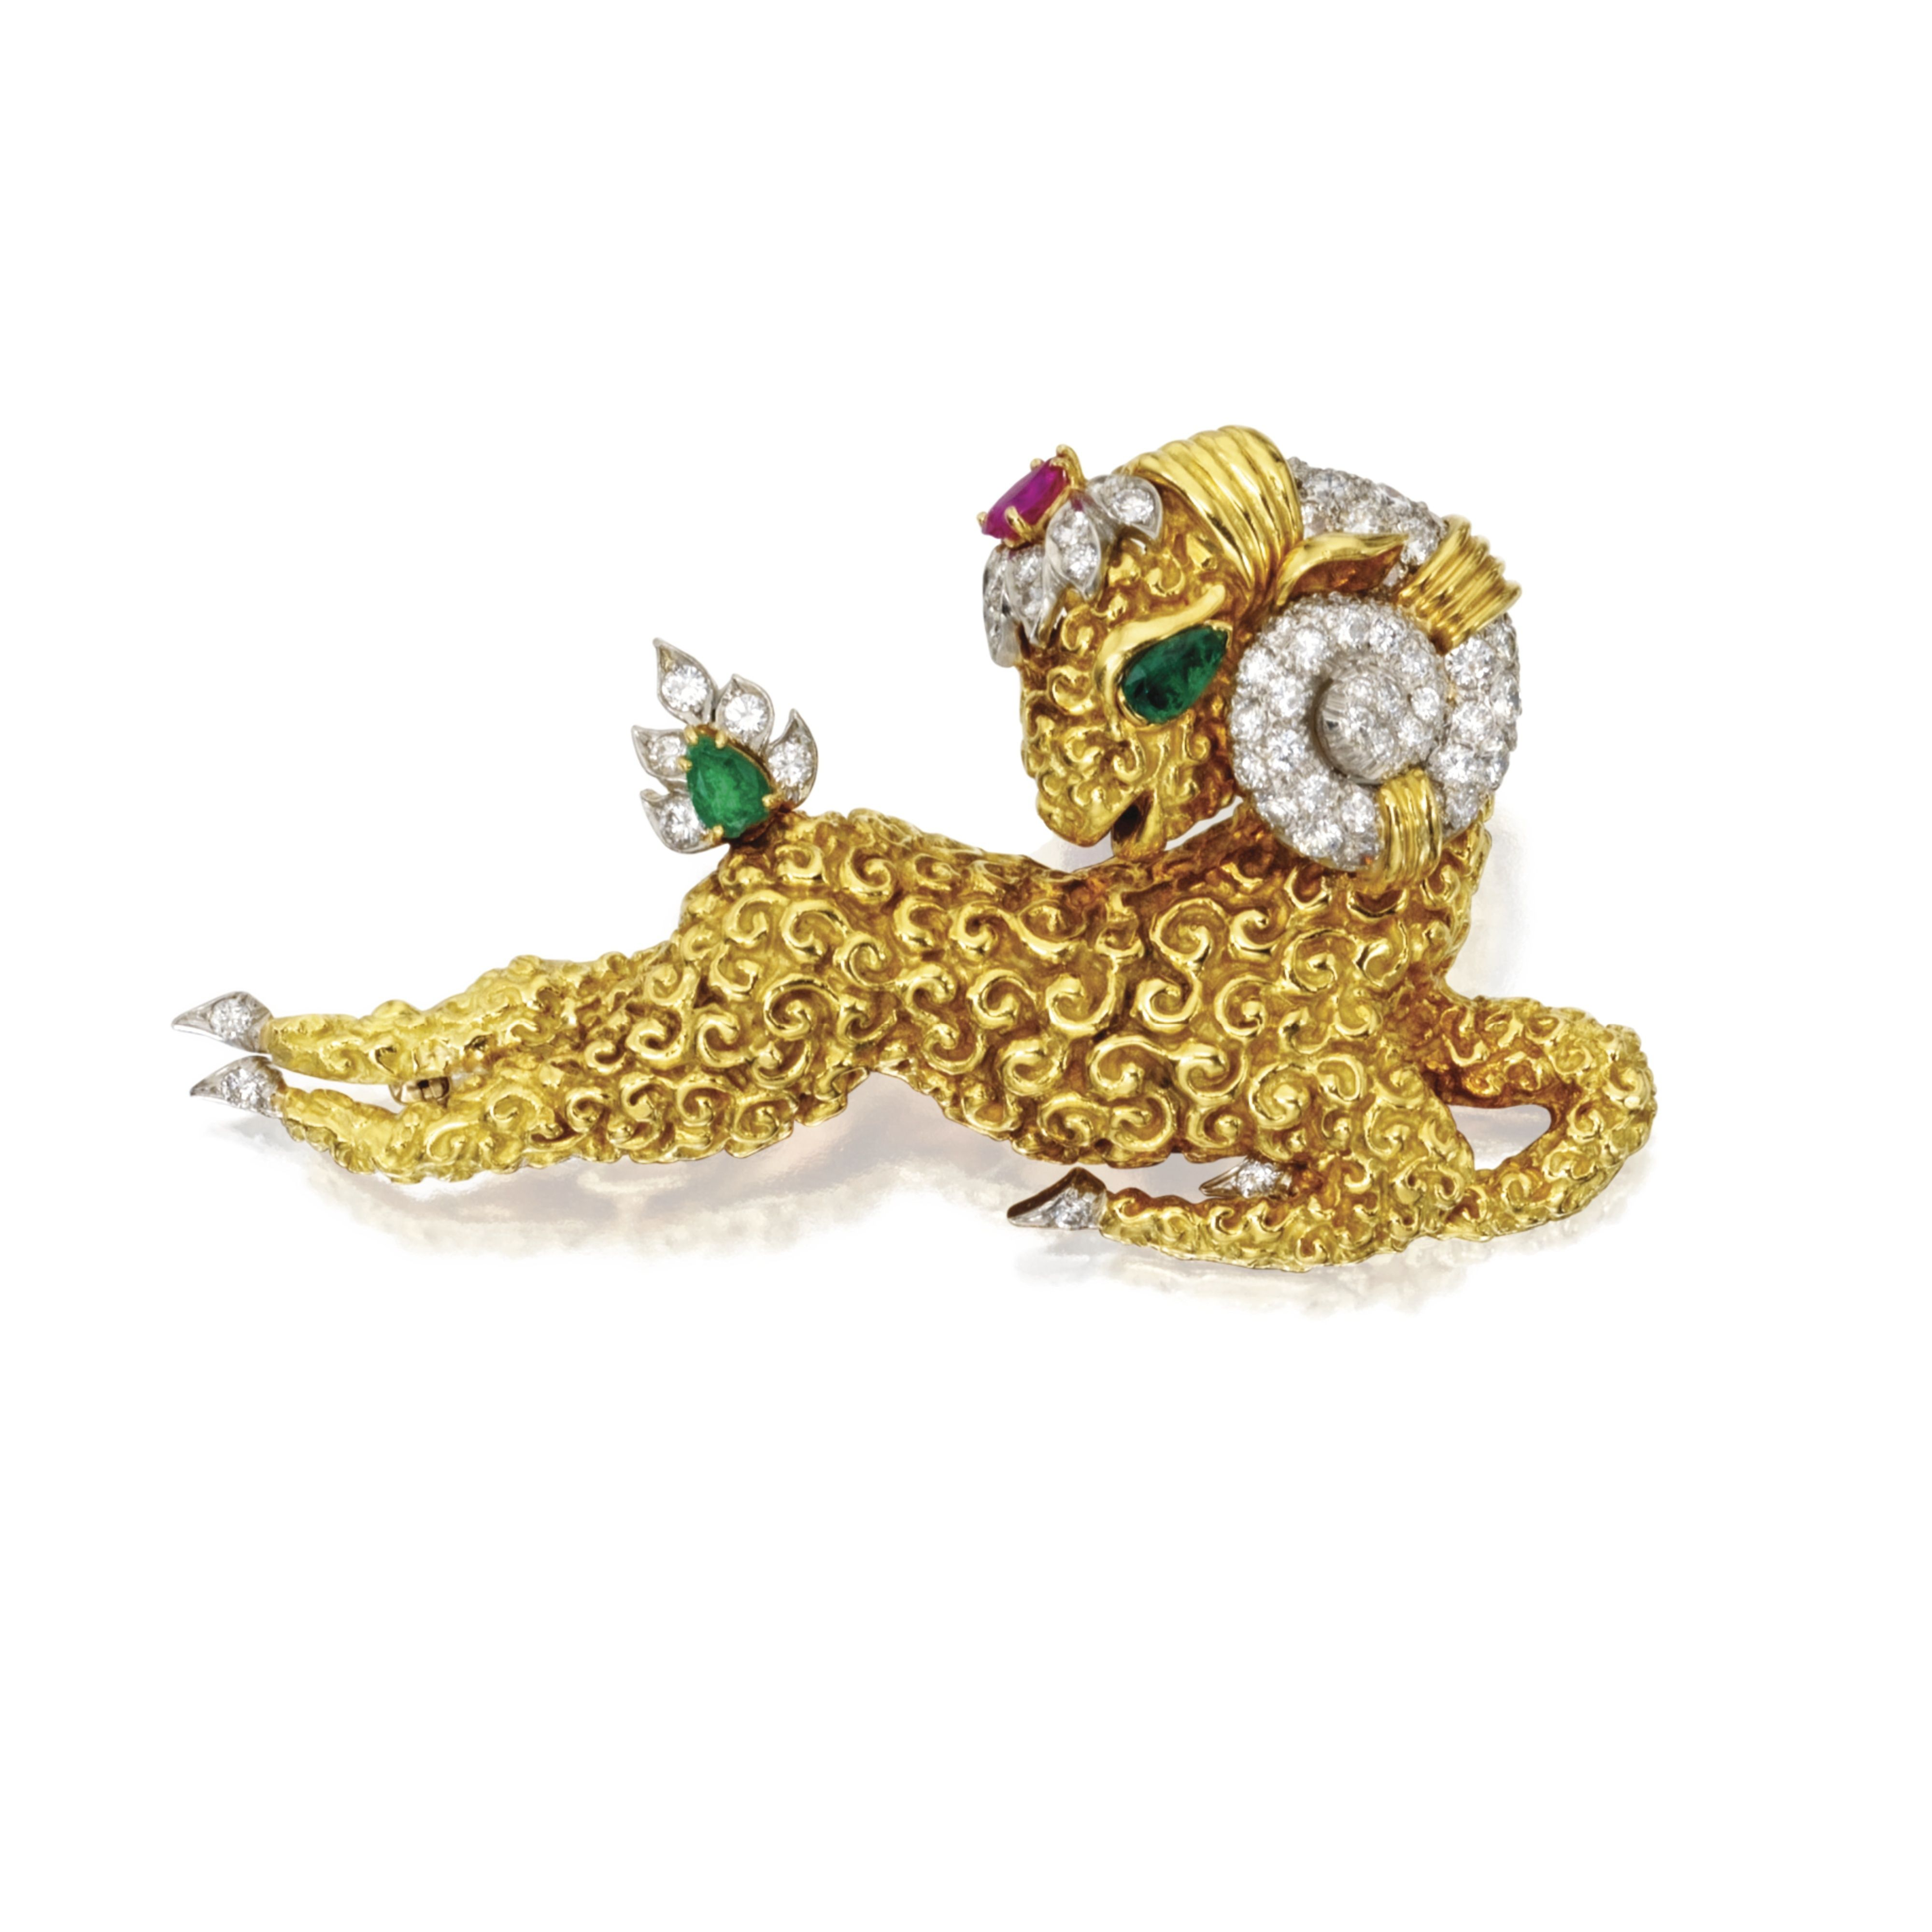 18 KARAT GOLD, PLATINUM, COLORED STONE AND DIAMOND BROOCH, DAVID WEBB Designed as a galloping ram composed of textured gold, set with round diamonds weighing approximately 2.90 carats, accented by pear-shaped emeralds and a pear-shaped ruby, signed Webb.